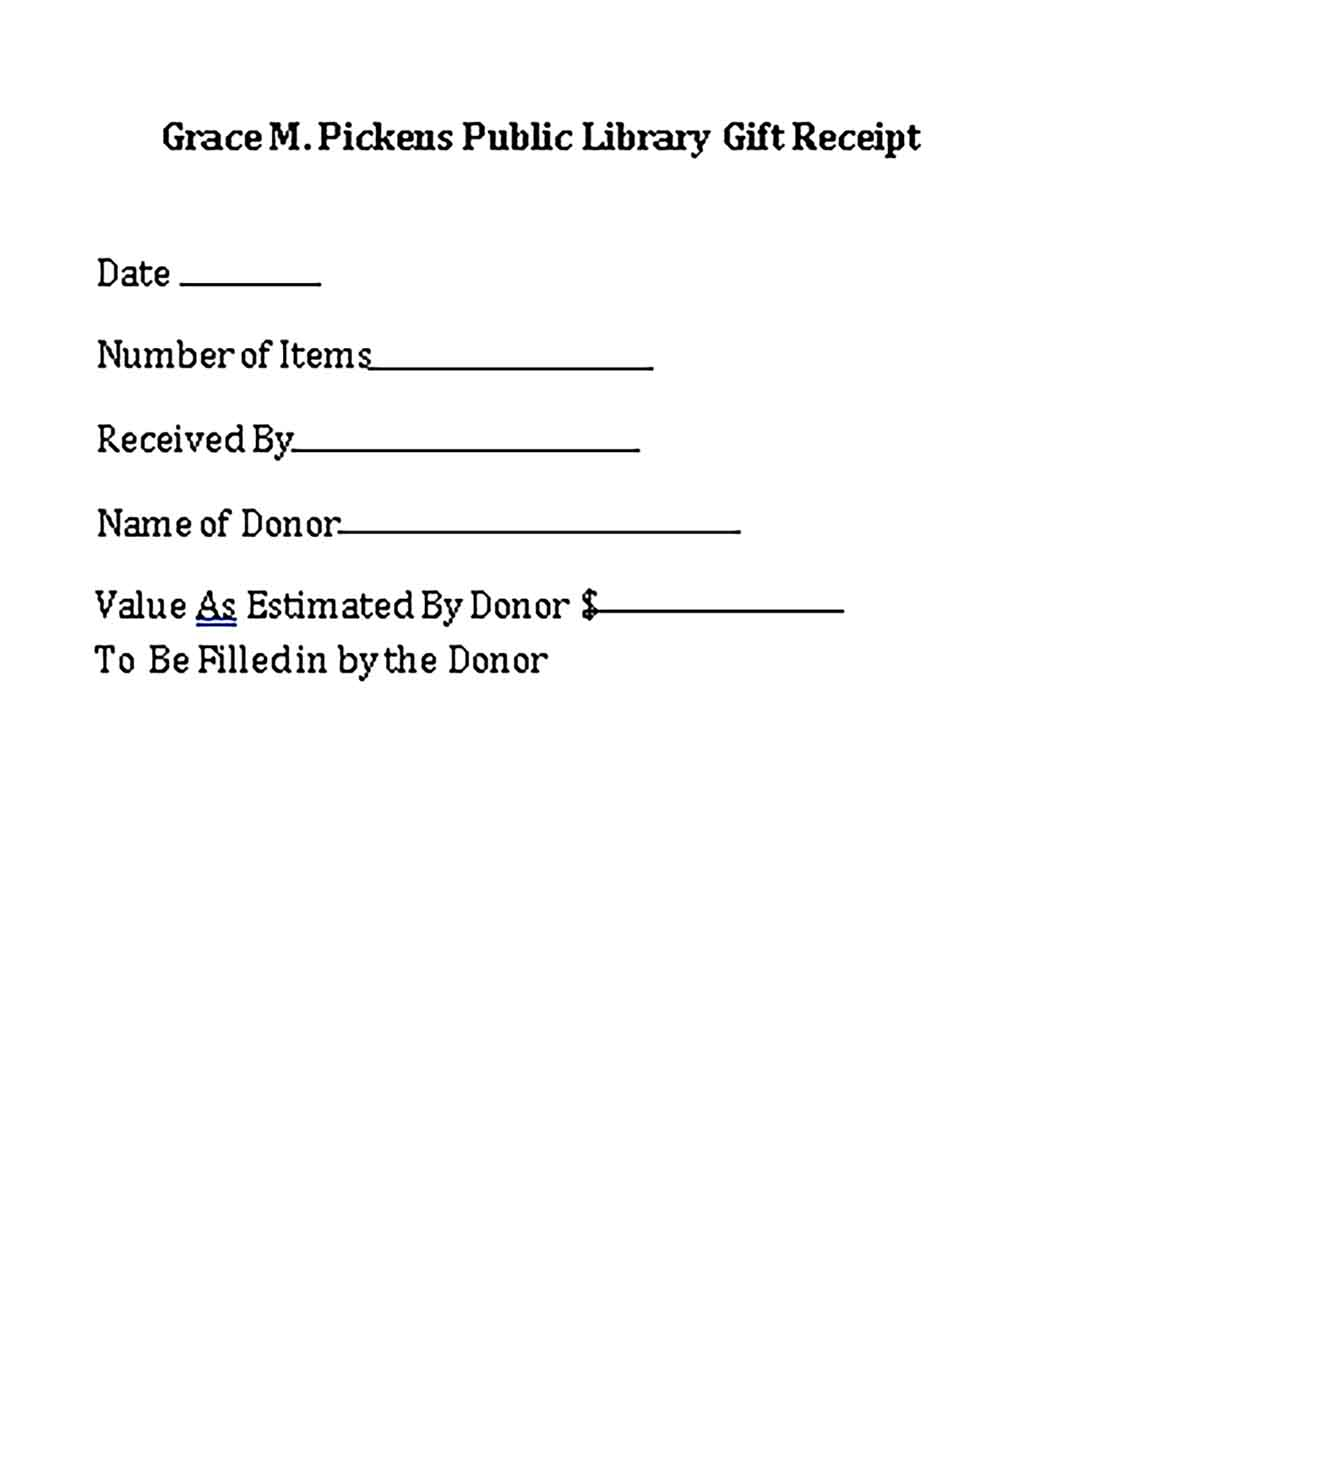 Sample Public Library Gift Templates